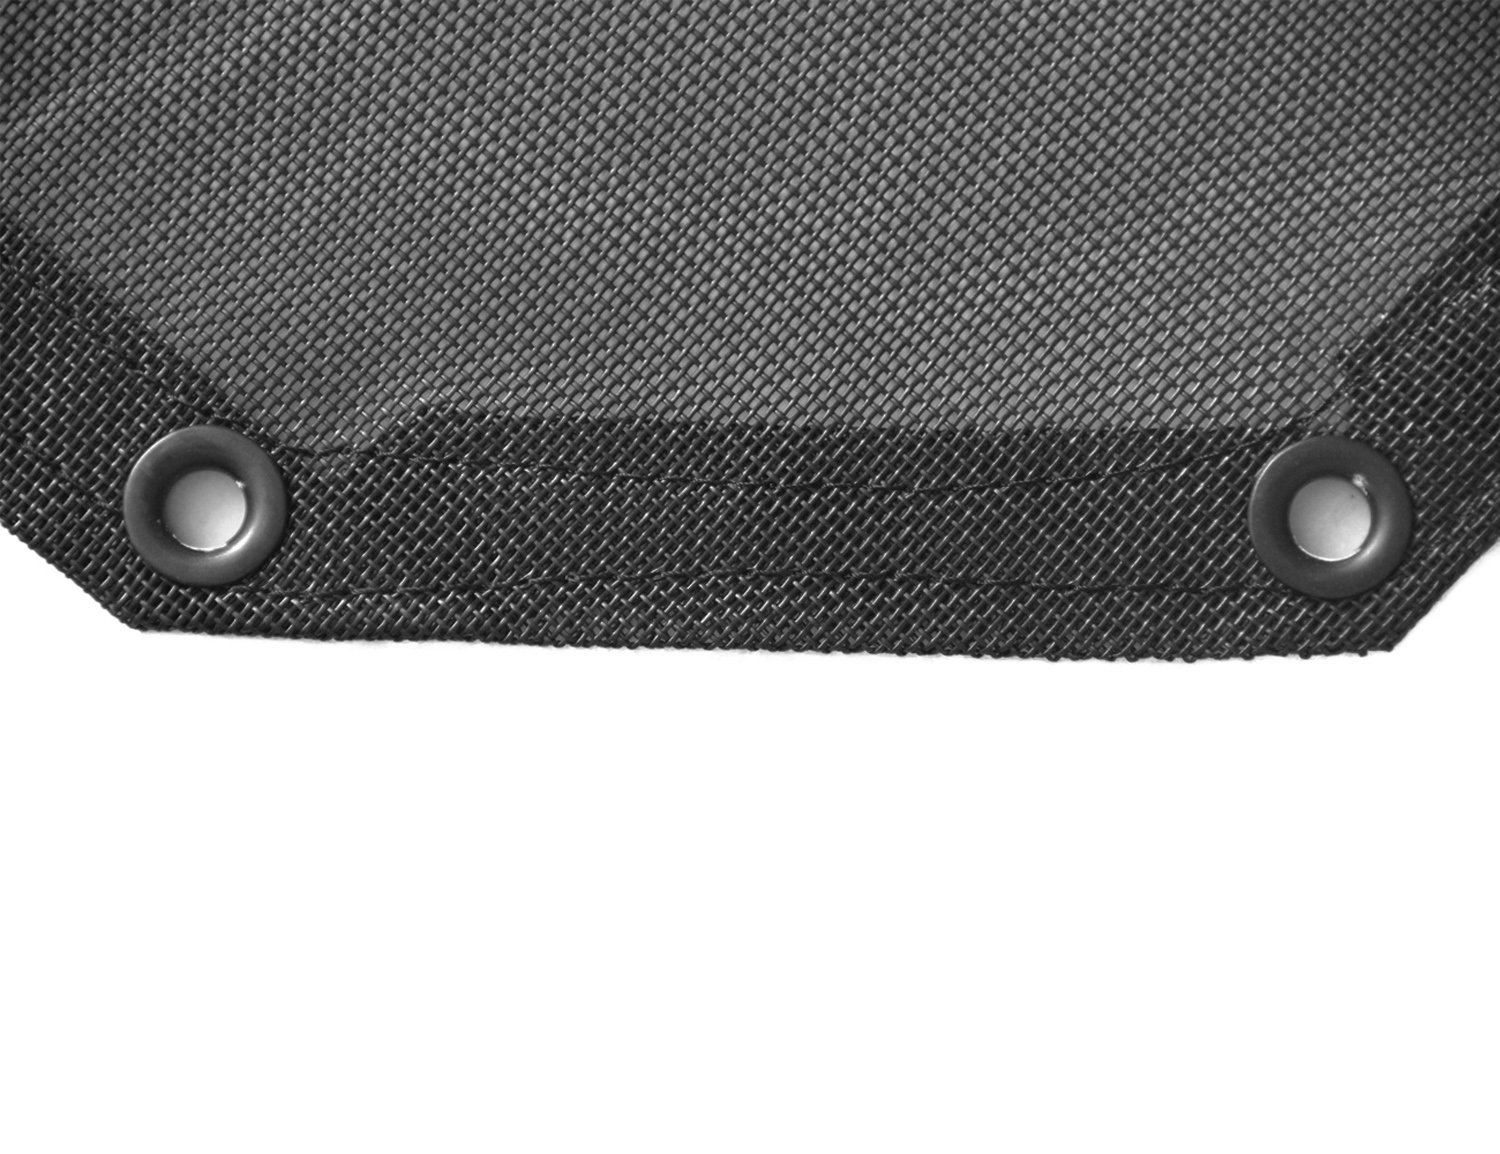 MOEBULB Eclipse Sunshade UV Protection Top Mesh Cover Sun Shade for Jeep Wrangler JK 2007-2018 4-Door, with Logo